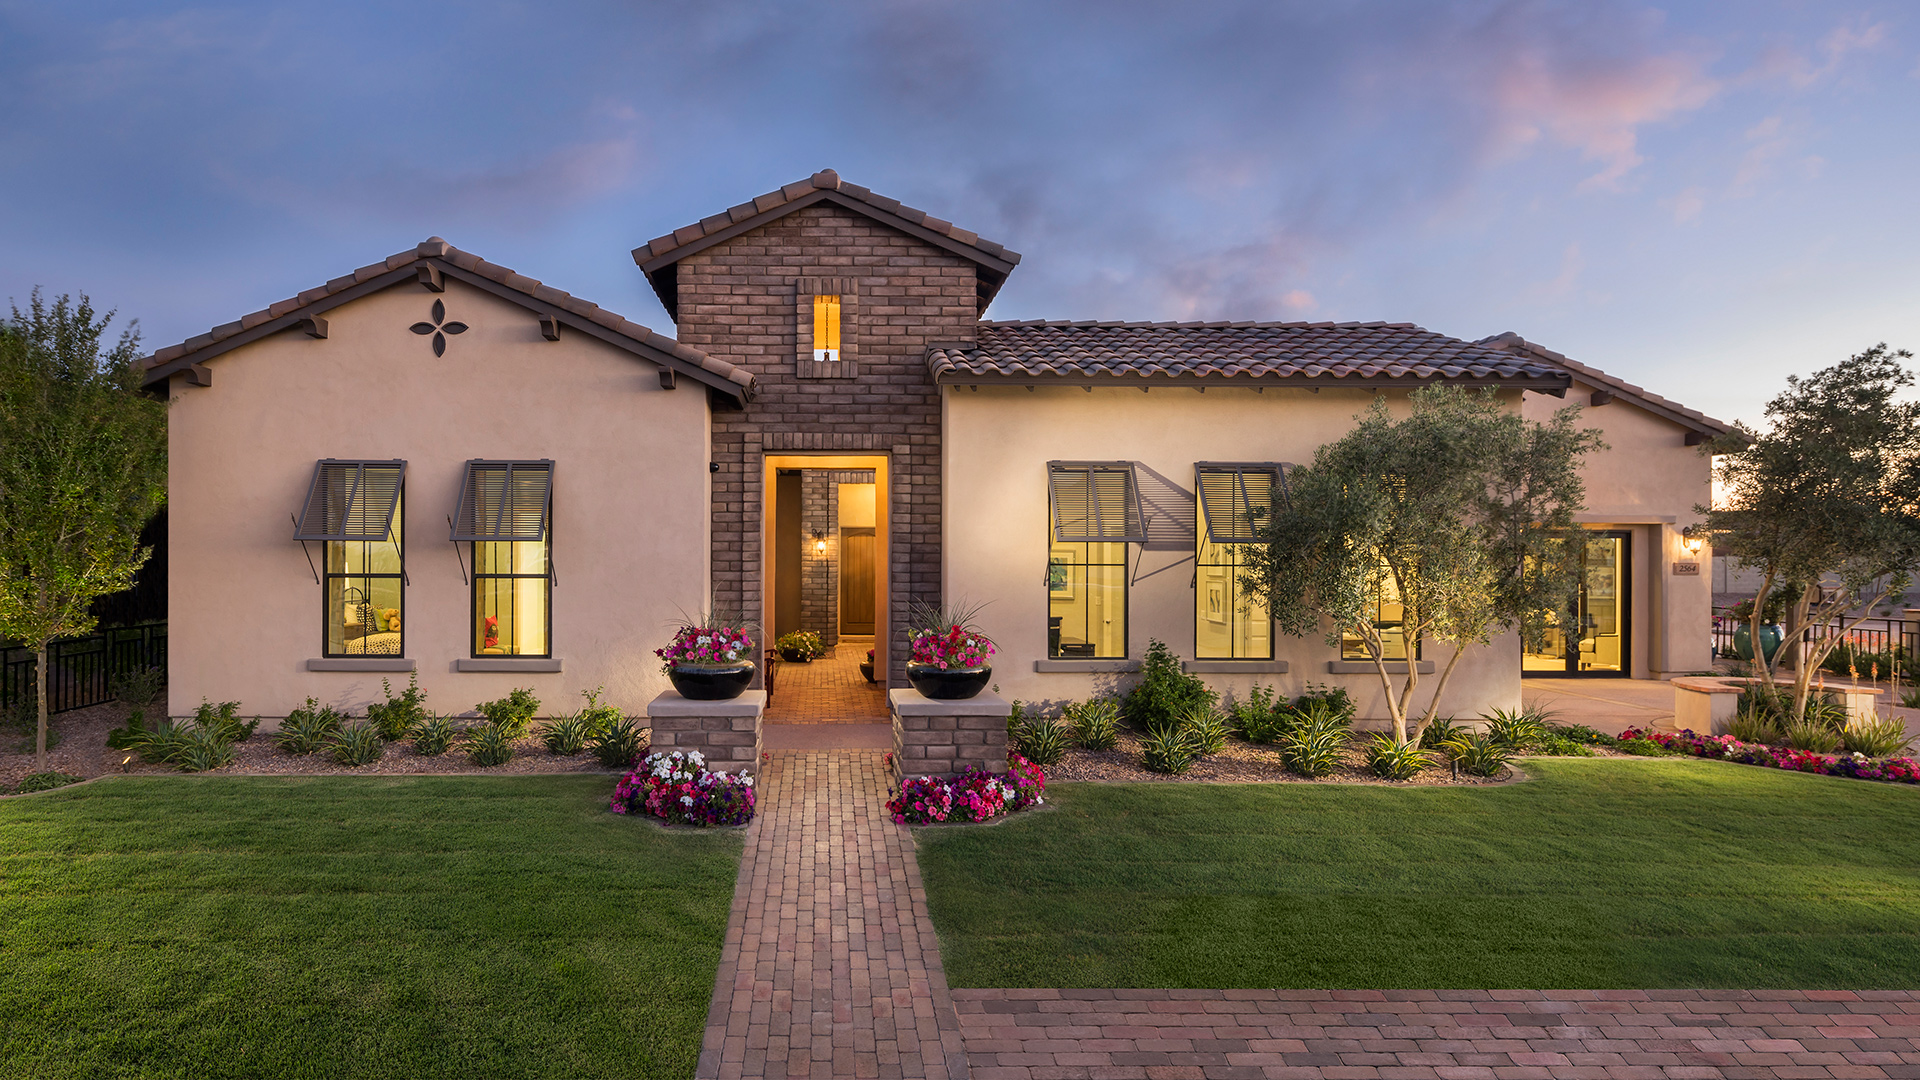 Here's the New Picture Of Patio Homes for Sale Arcadia Phoenix